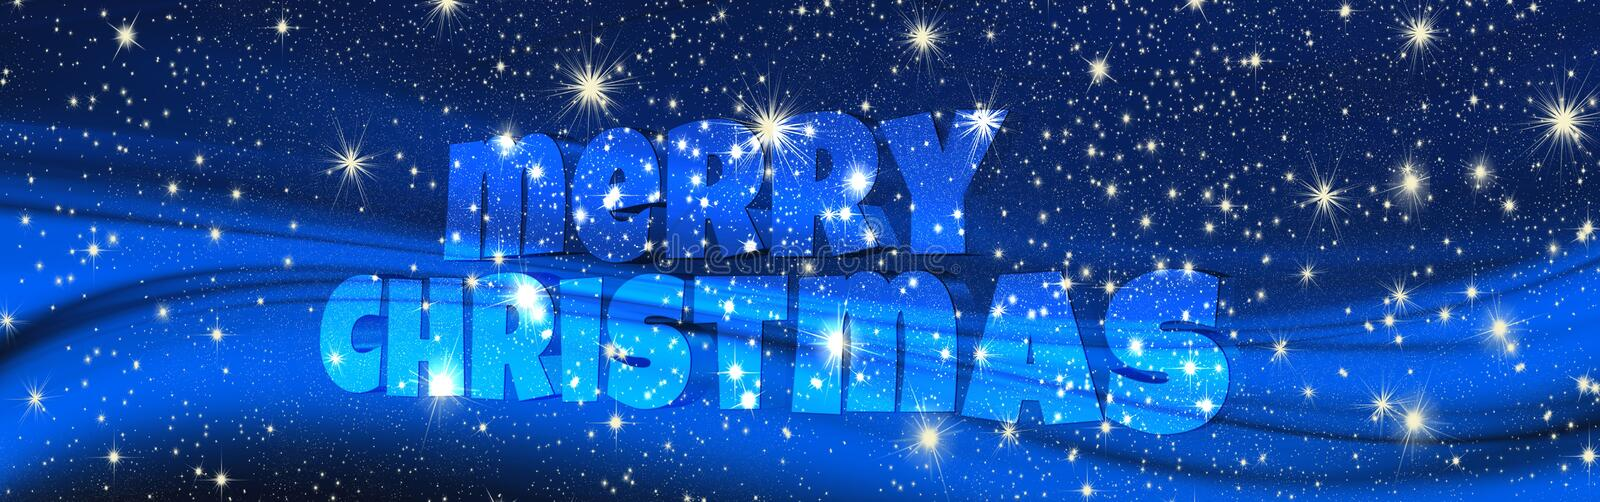 Merry Christmas and stars, background royalty free stock photography